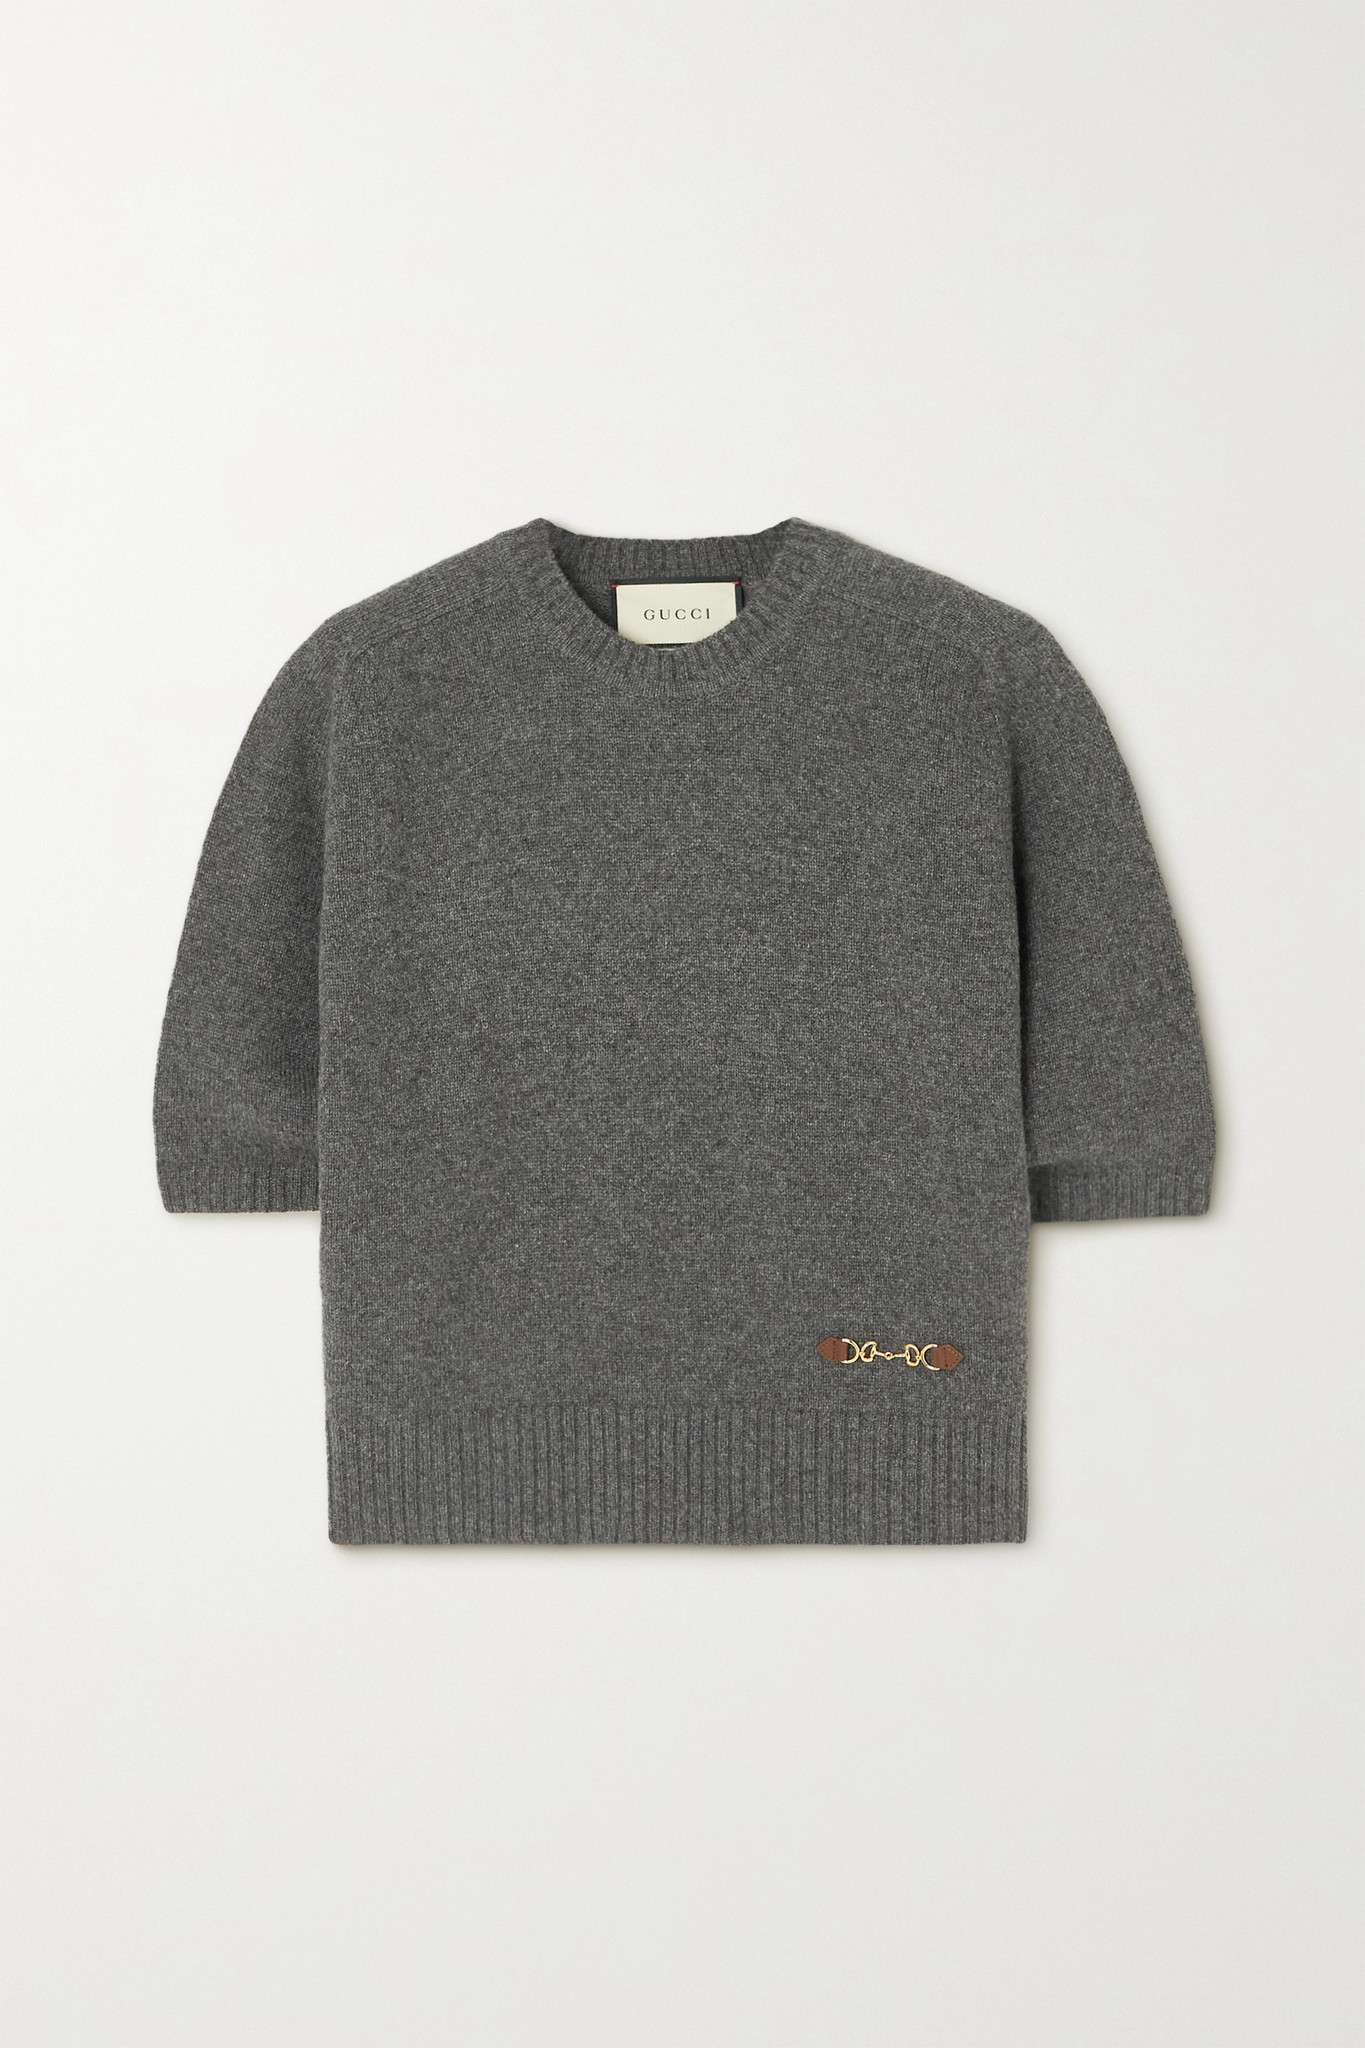 GUCCI - Horsebit-detailed Leather-trimmed Cashmere Sweater - Gray - small